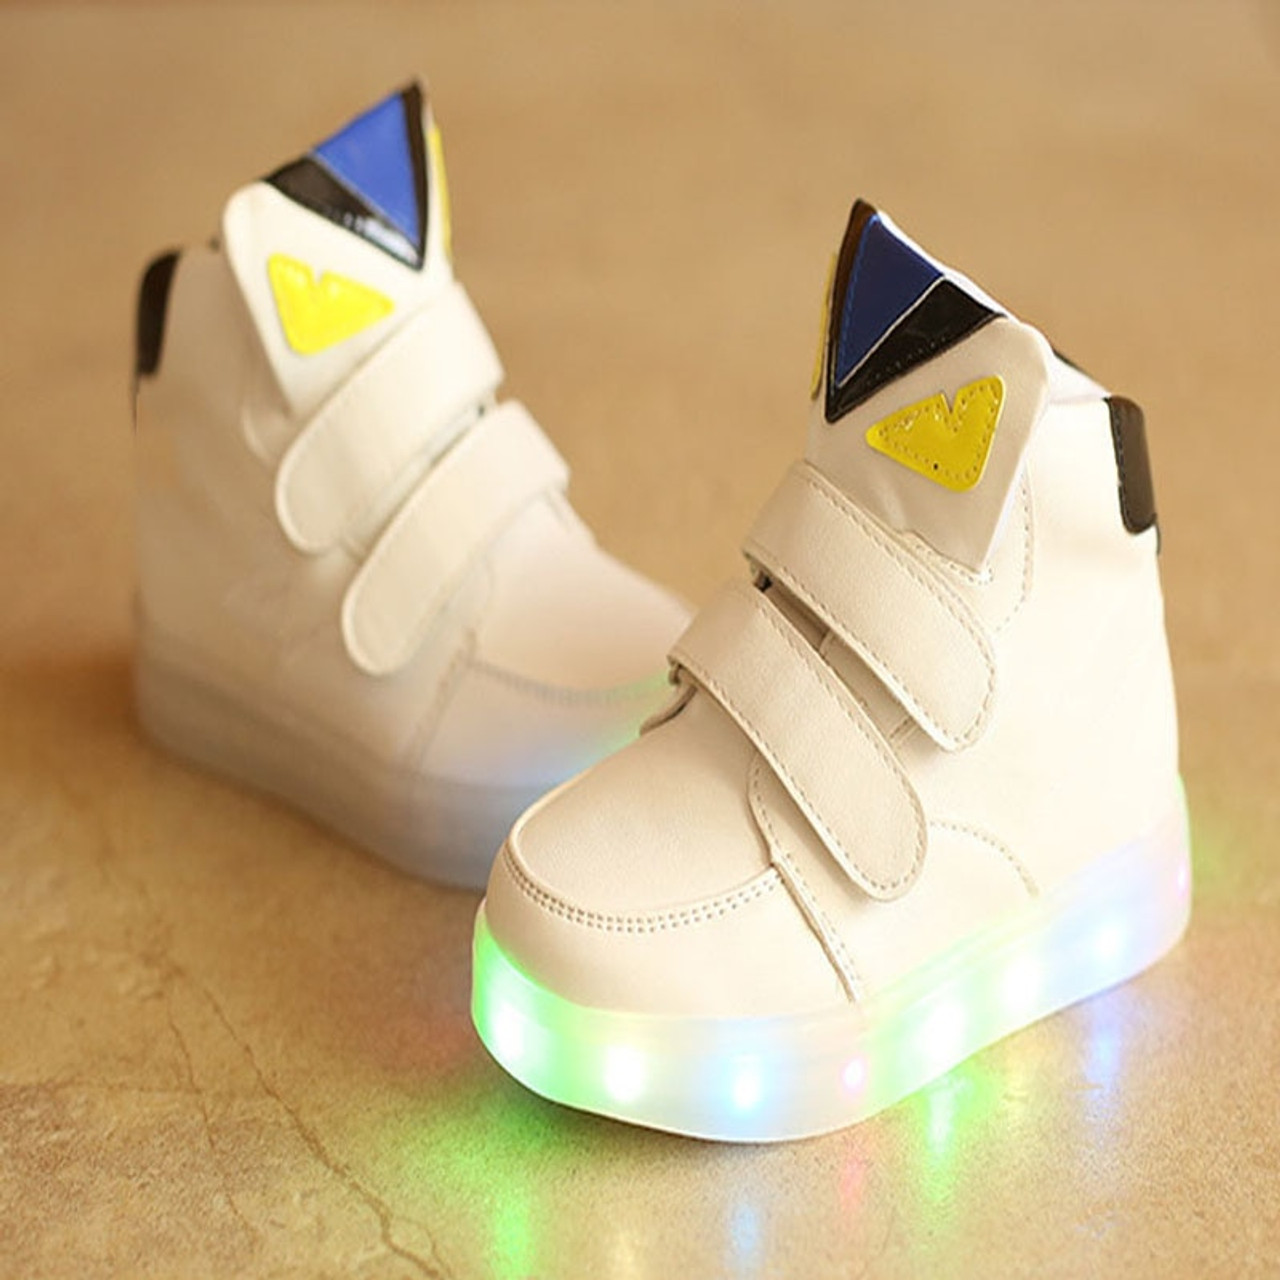 ... Funny cartoon footwear LED colorful lighting baby shoes 5 stars  excellent cute girls boys shoes high ... 098a030a4a64